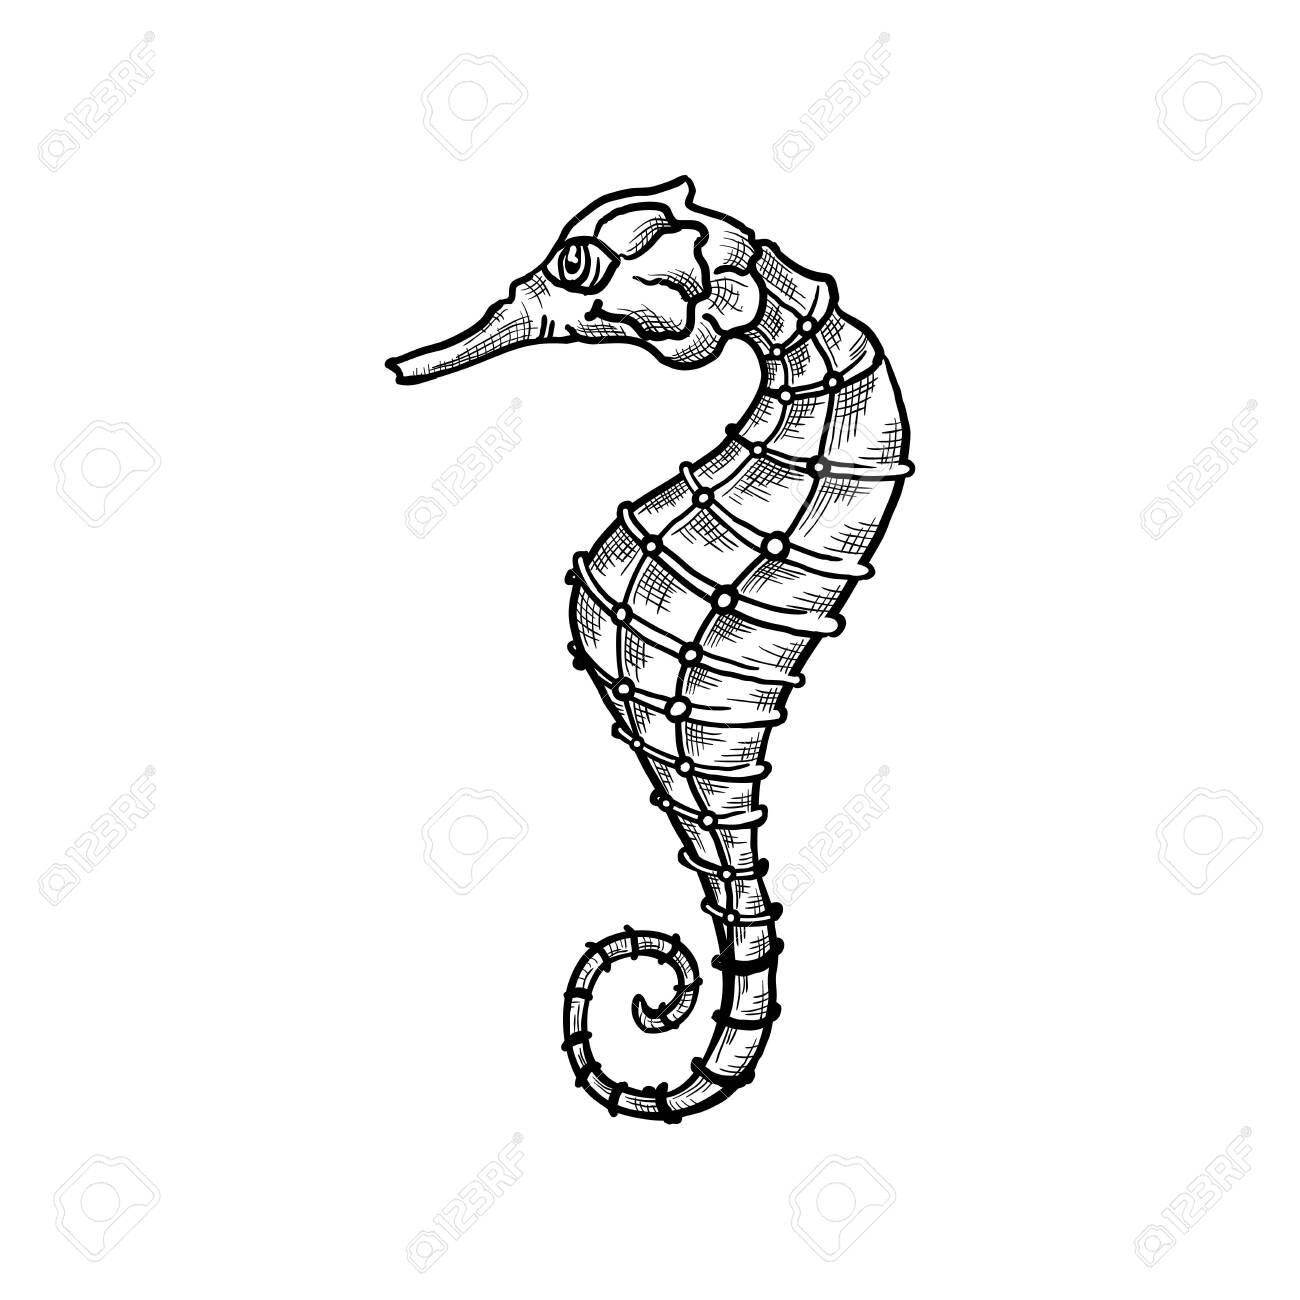 Seahorse Vector Sketch And Thin Line Art Aquatic Animal With Royalty Free Cliparts Vectors And Stock Illustration Image 140750439